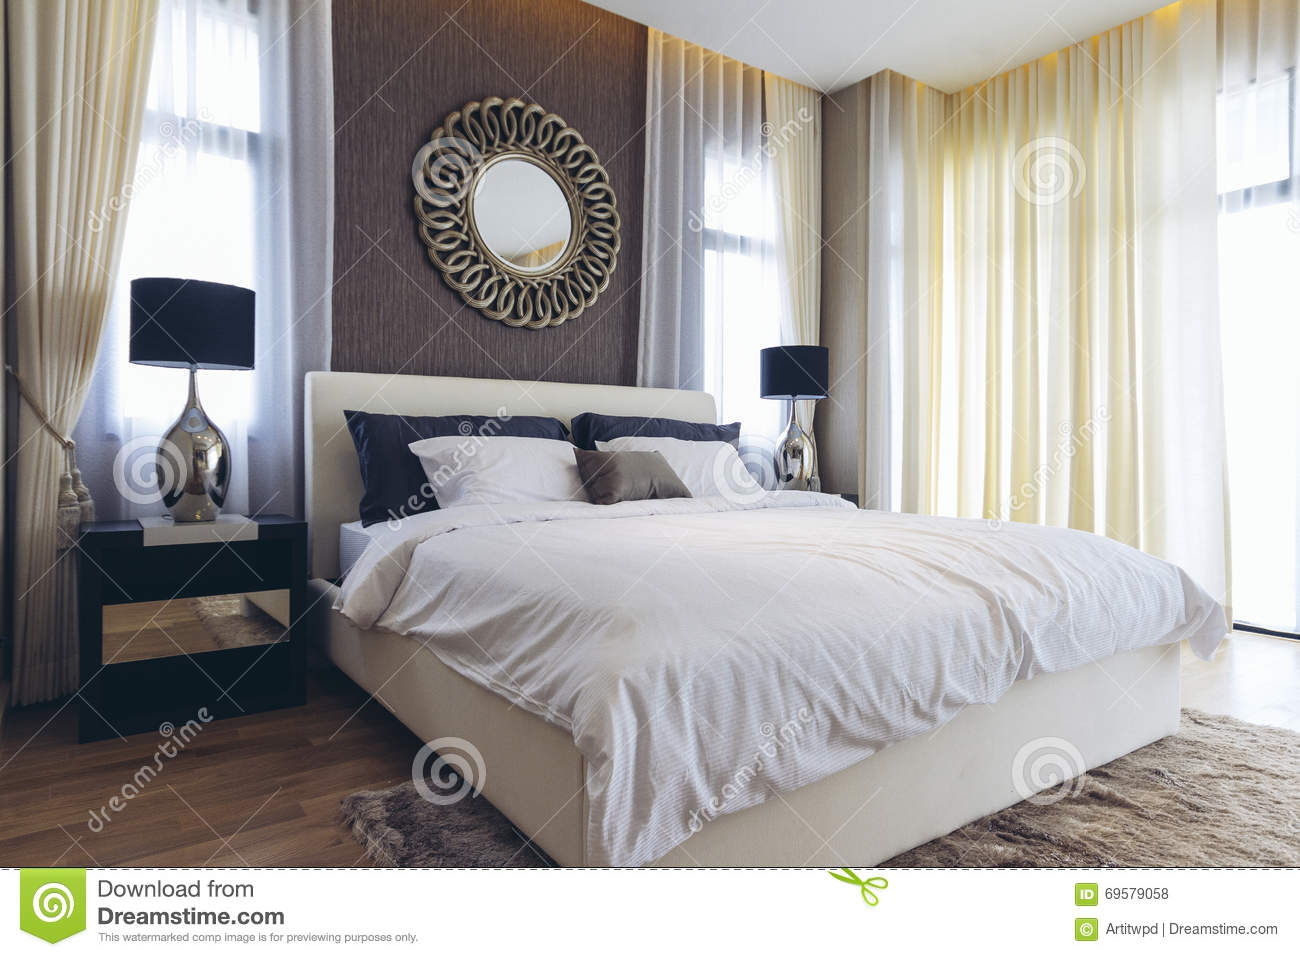 Chambre à Coucher Italienne Moderne House Modèle Moderne Italien Chambre à Coucher Photo Stock